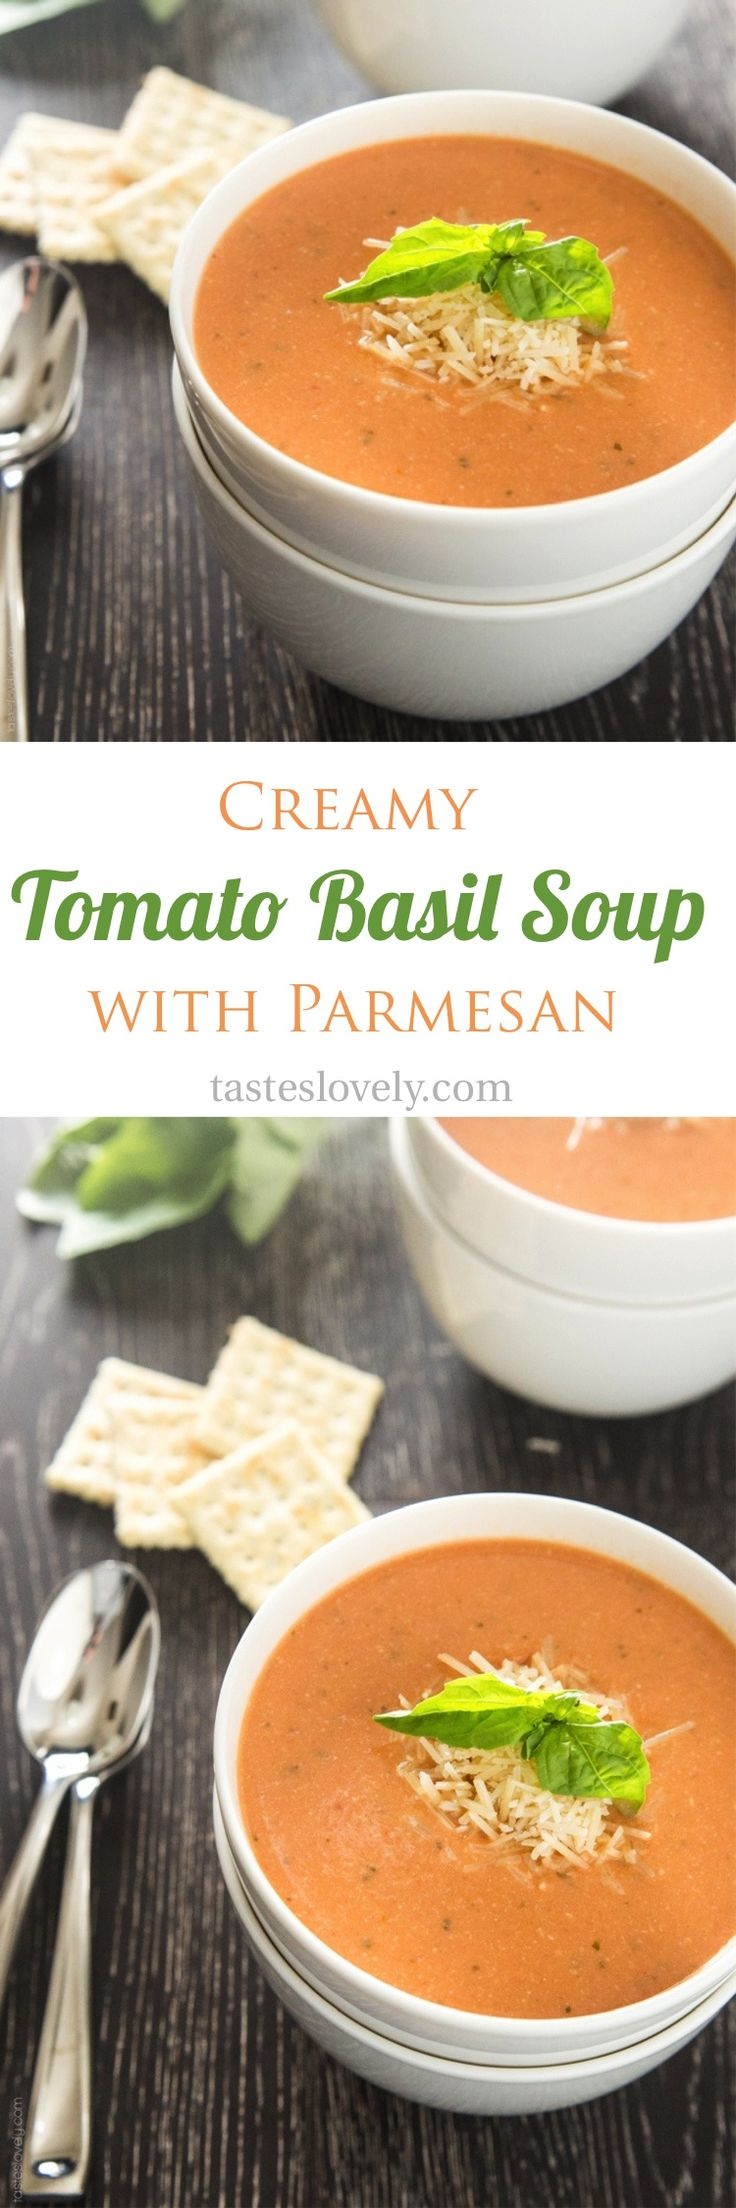 Creamy tomato basil soup with parmesan cheese – the BEST tomato soup I've ever had!